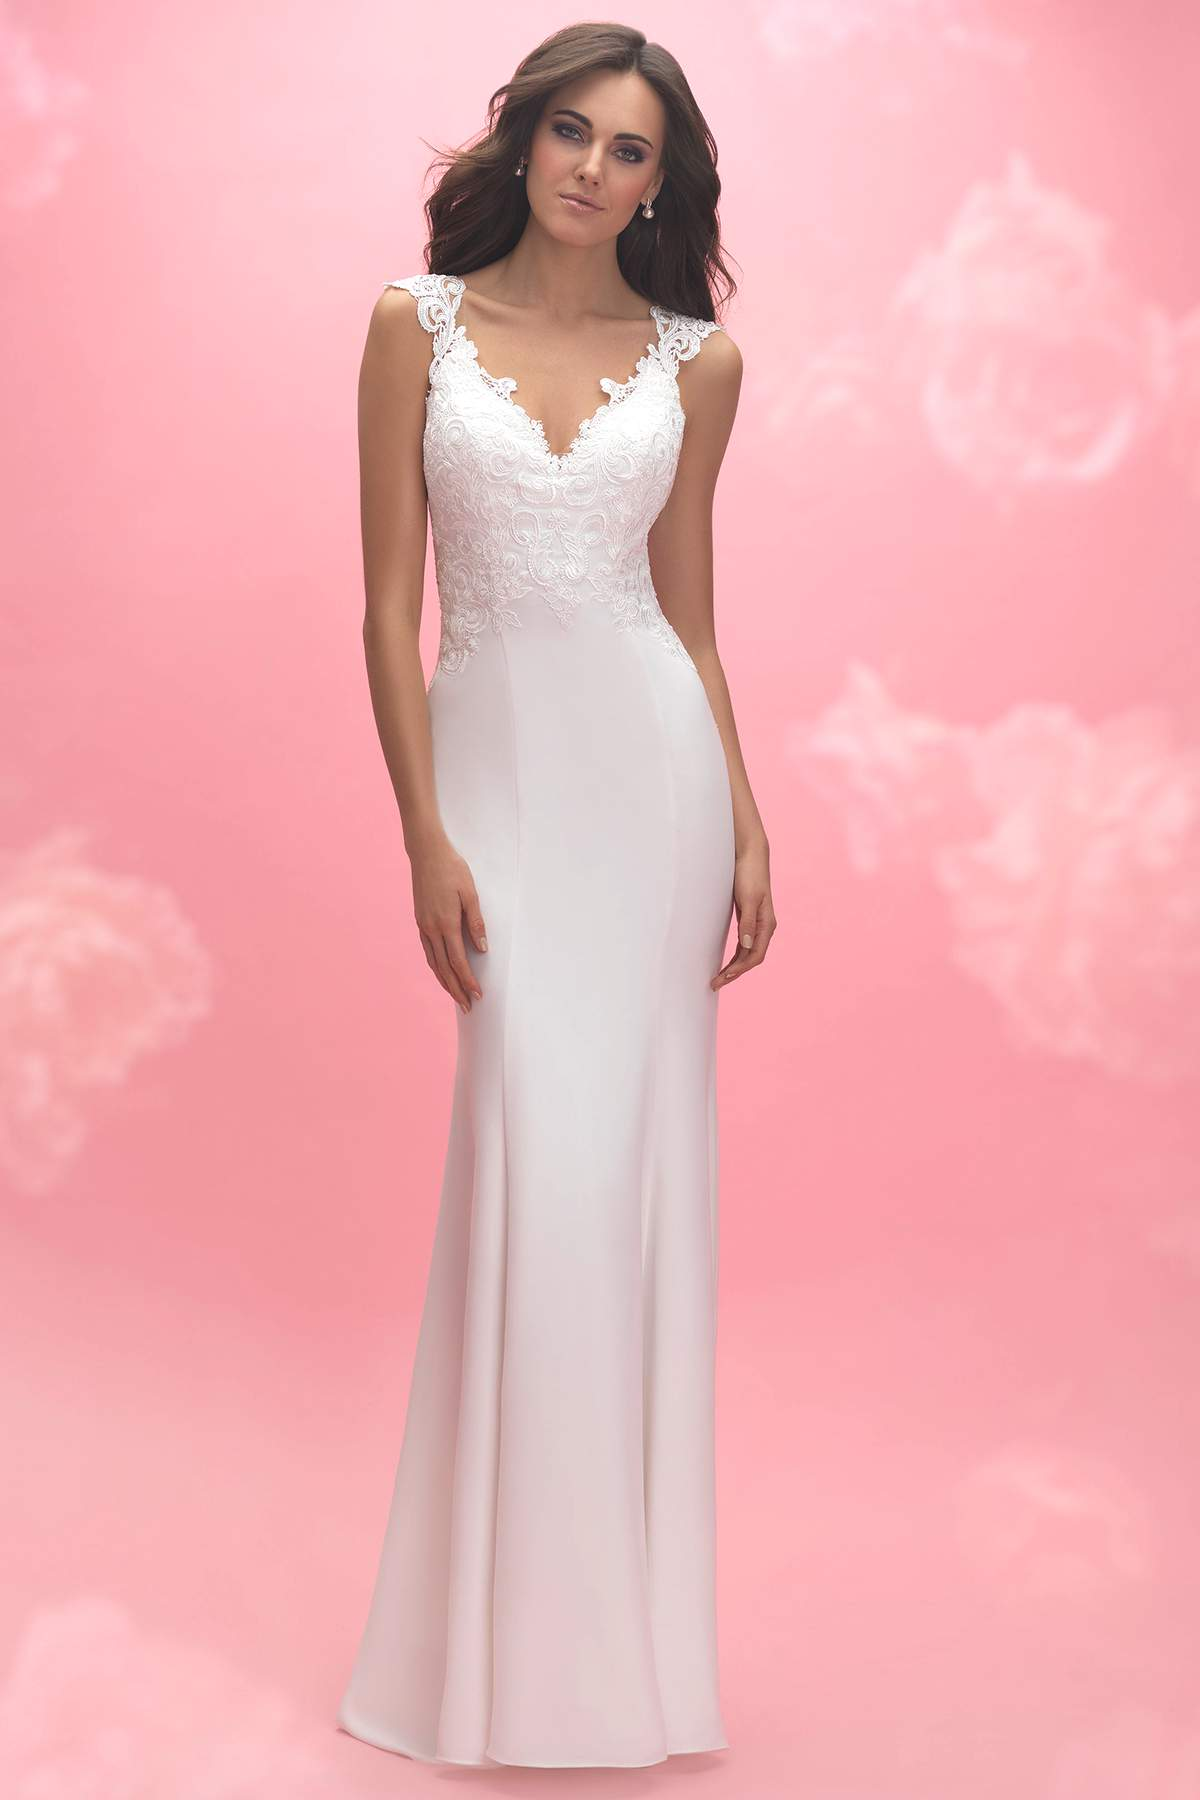 Style 3058 by Allure Romance - Find Your Dream Dress